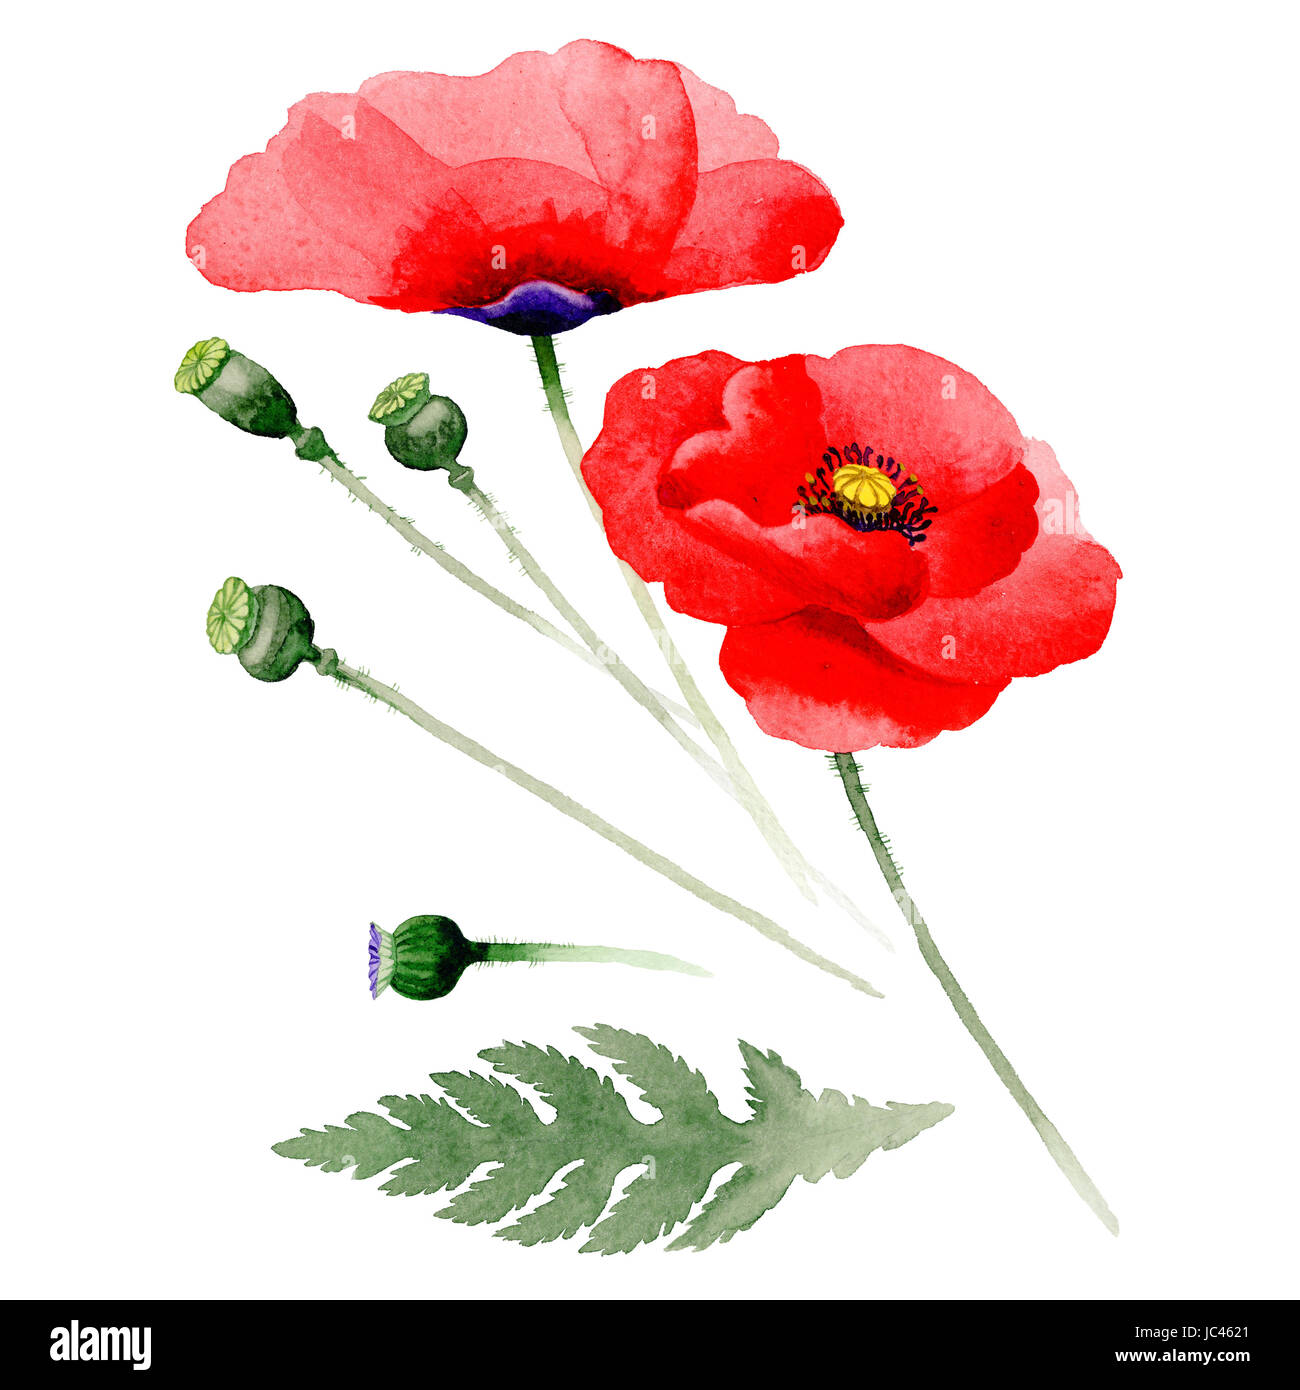 Wildflower Poppy Flower In A Watercolor Style Isolated Full Name Of